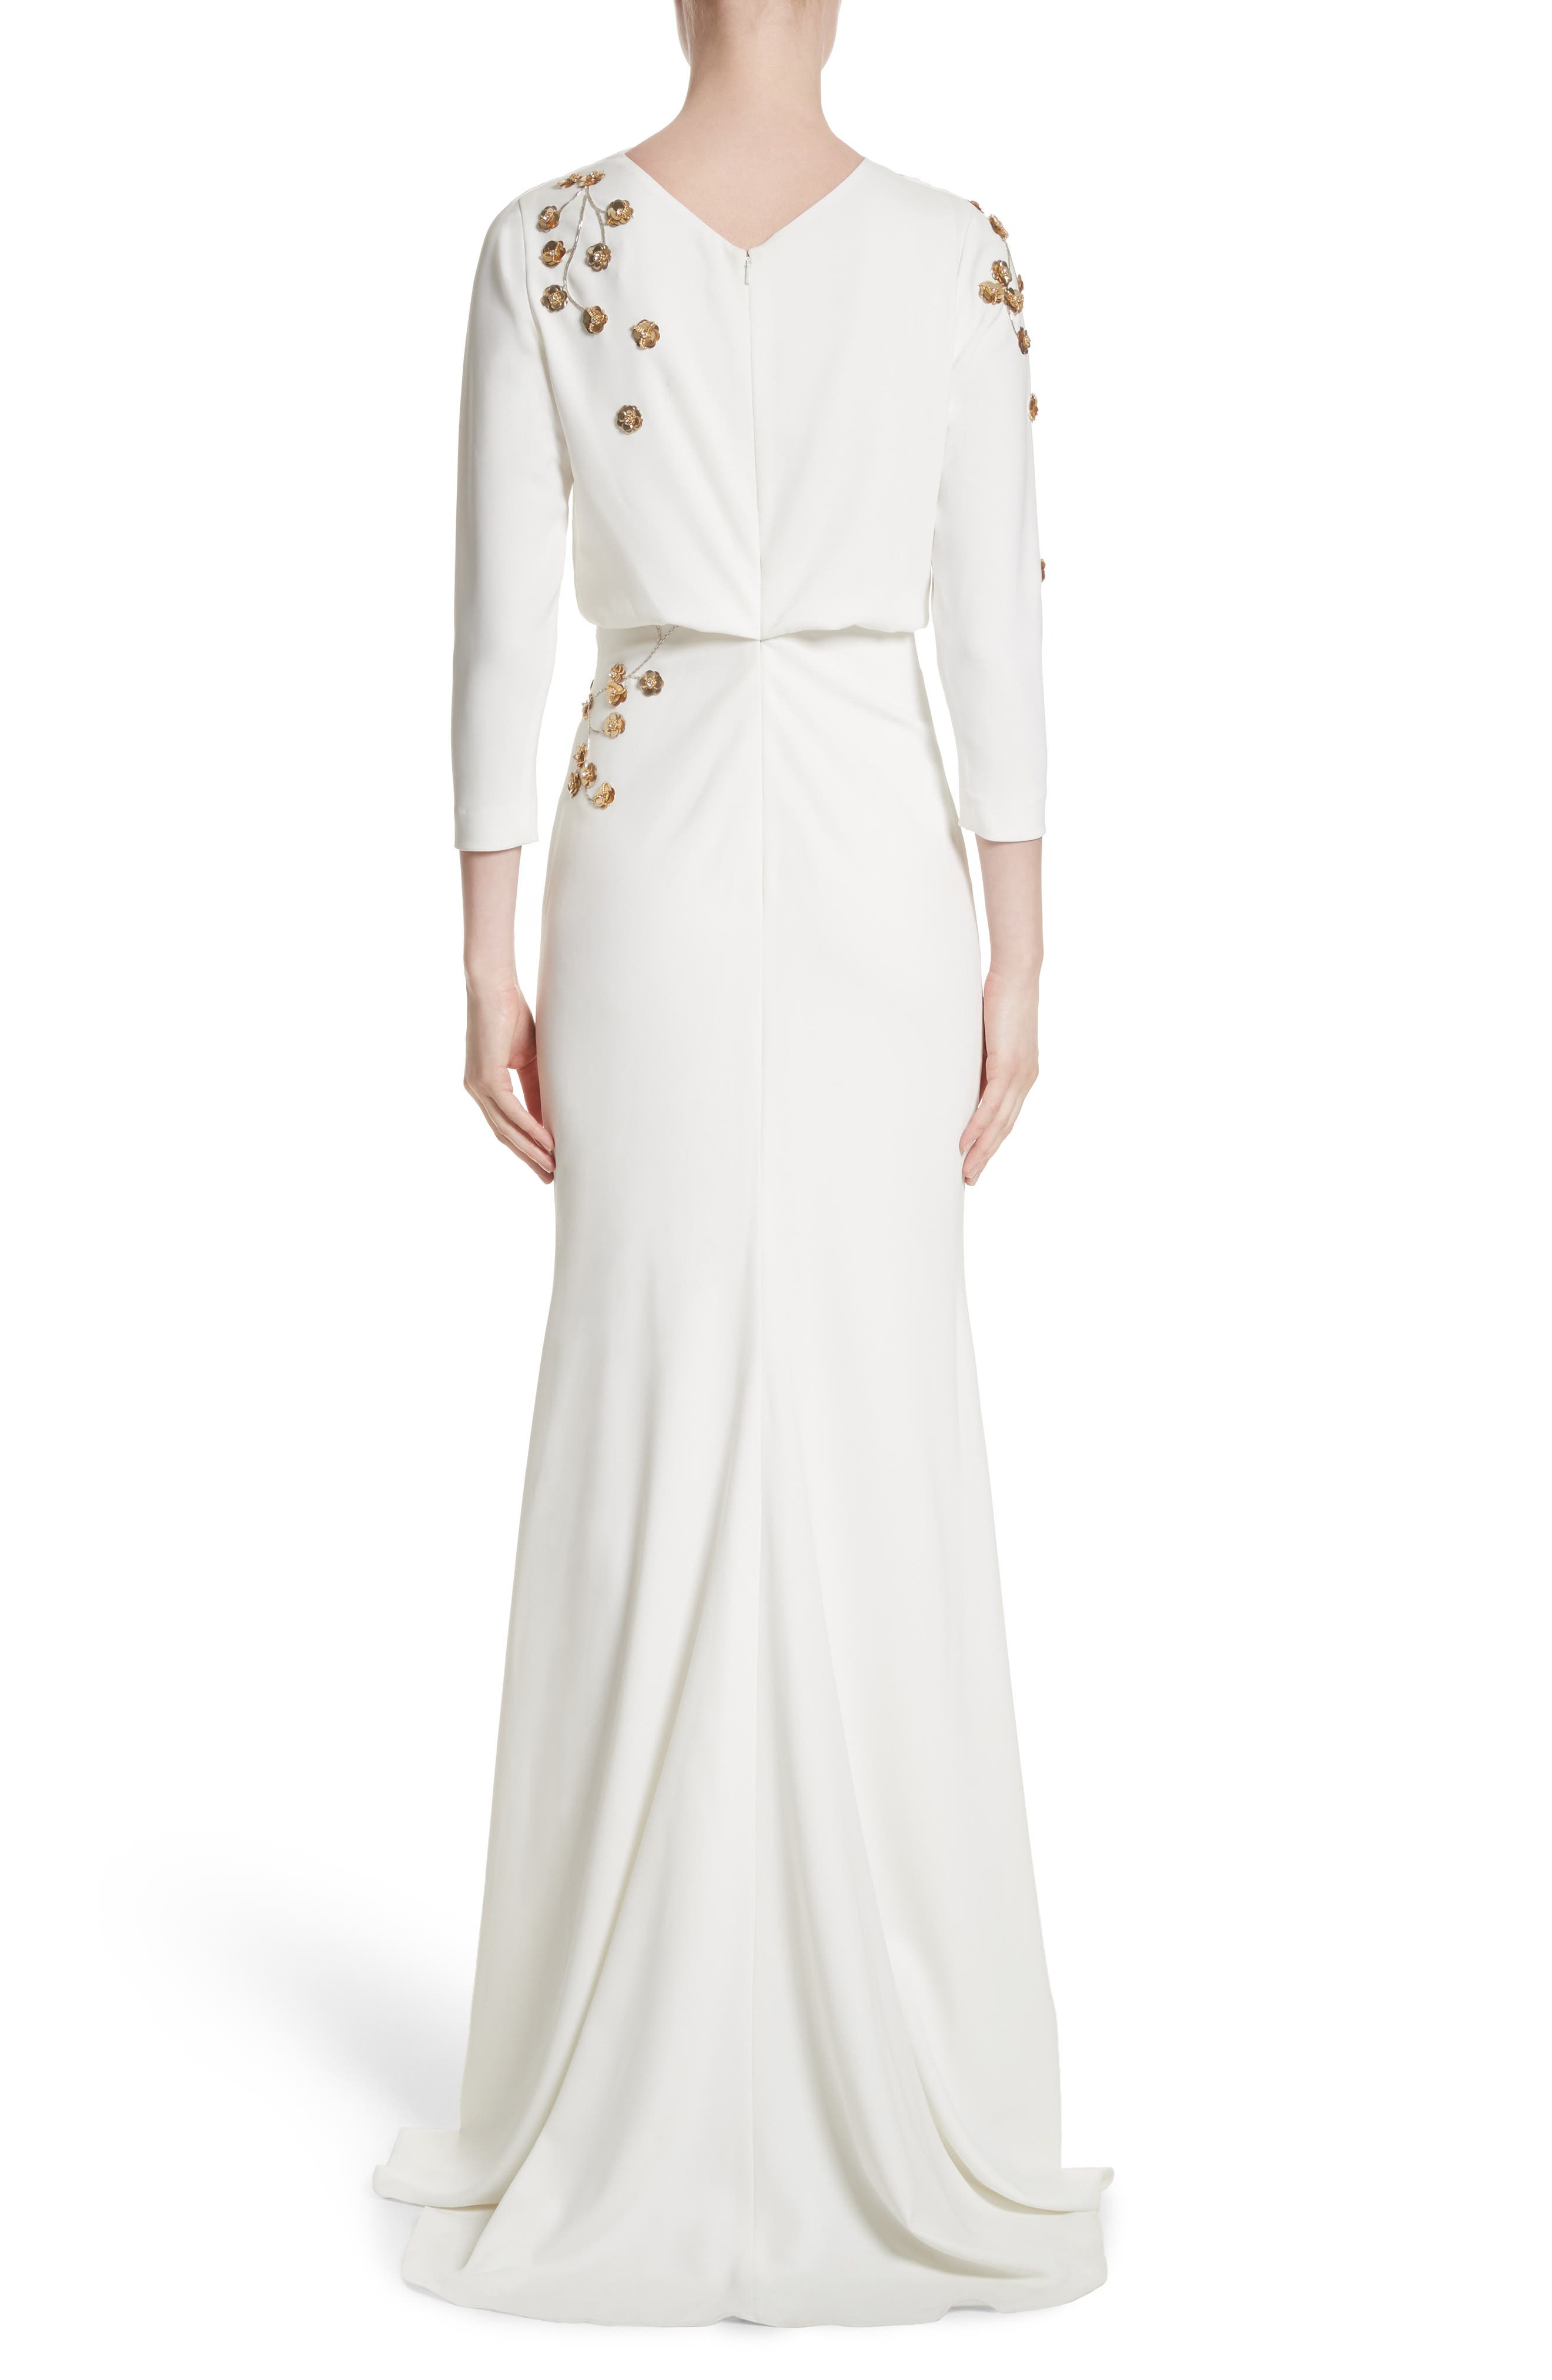 Badgley Mischka Couture Floral Embellished Crepe Gown,                             Alternate thumbnail 2, color,                             900